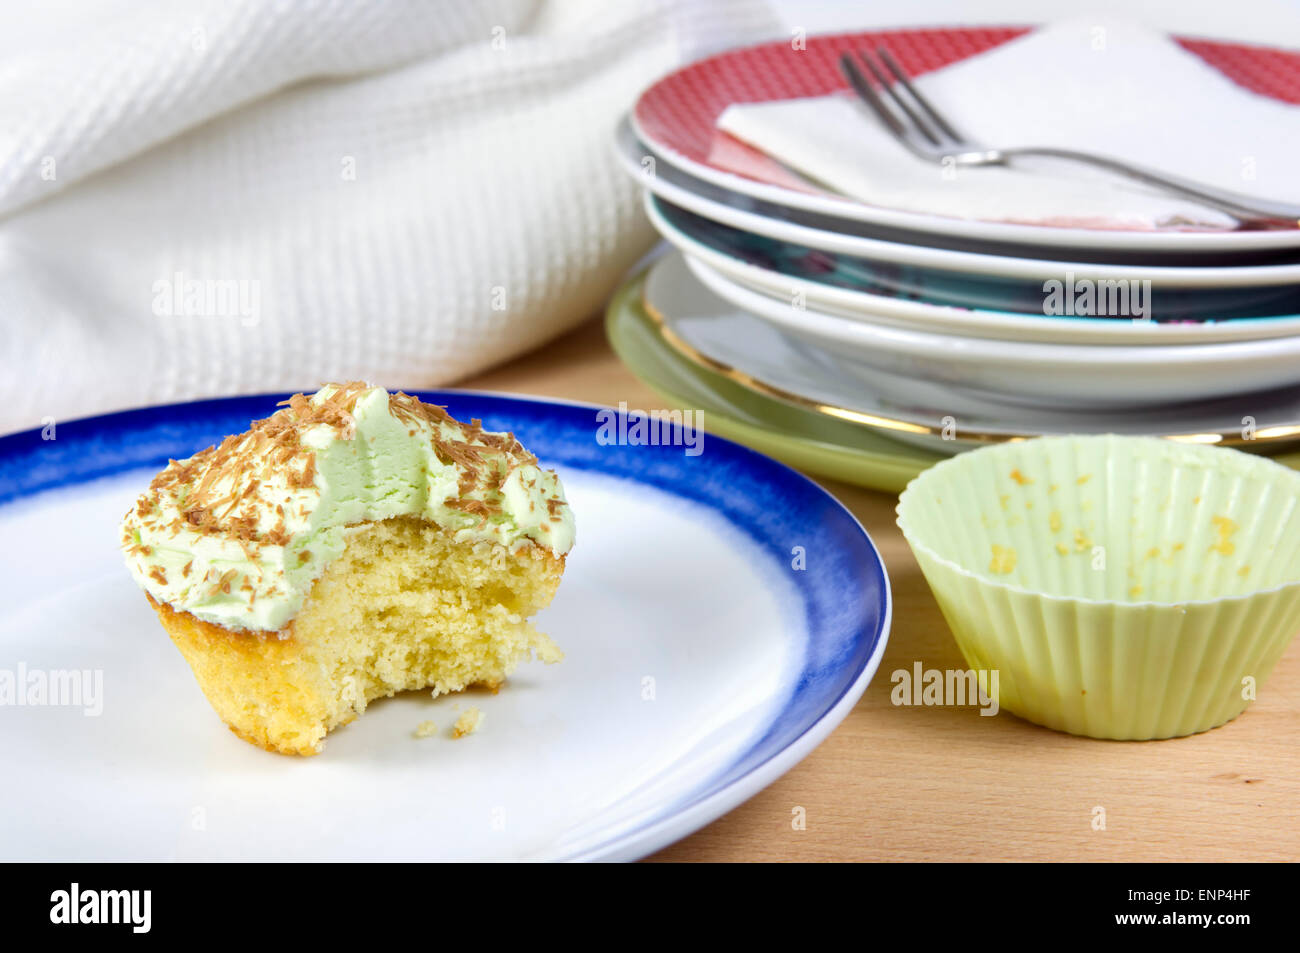 Pistachio cupcake with green icing, chocolate shavings and a bite taken out of, on a white and blue plate - Stock Image